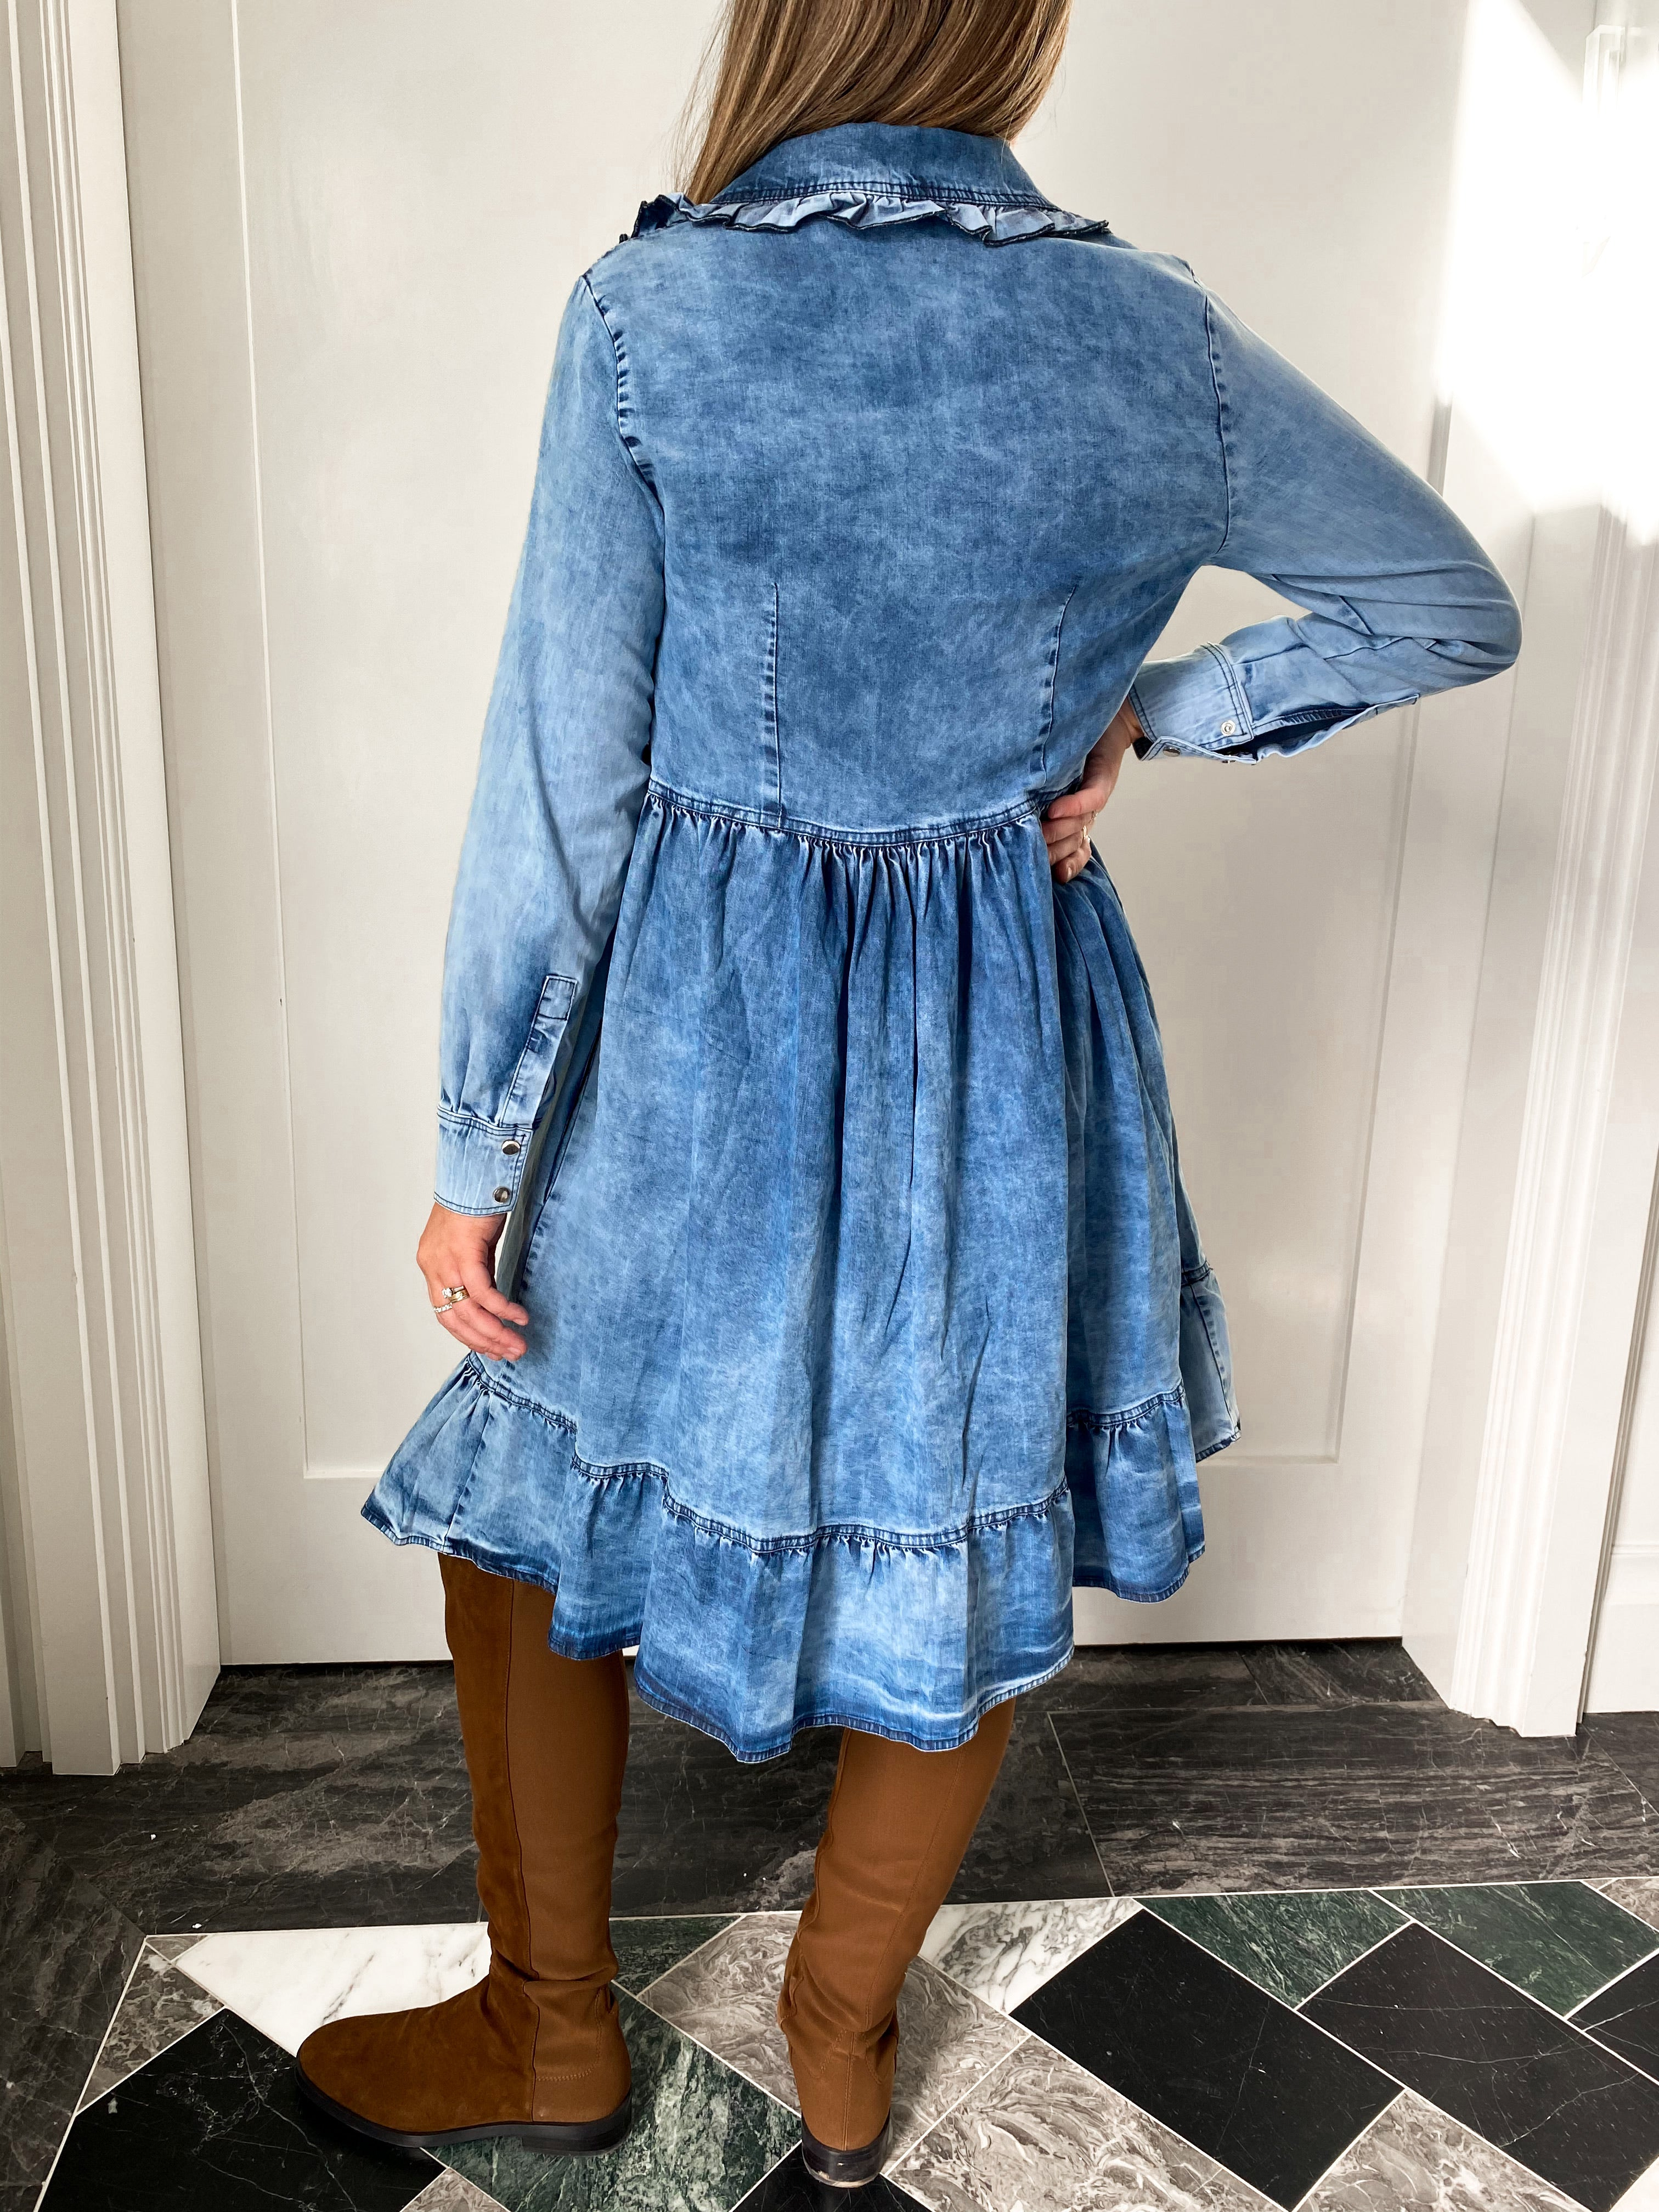 The Denim Abigail Dress